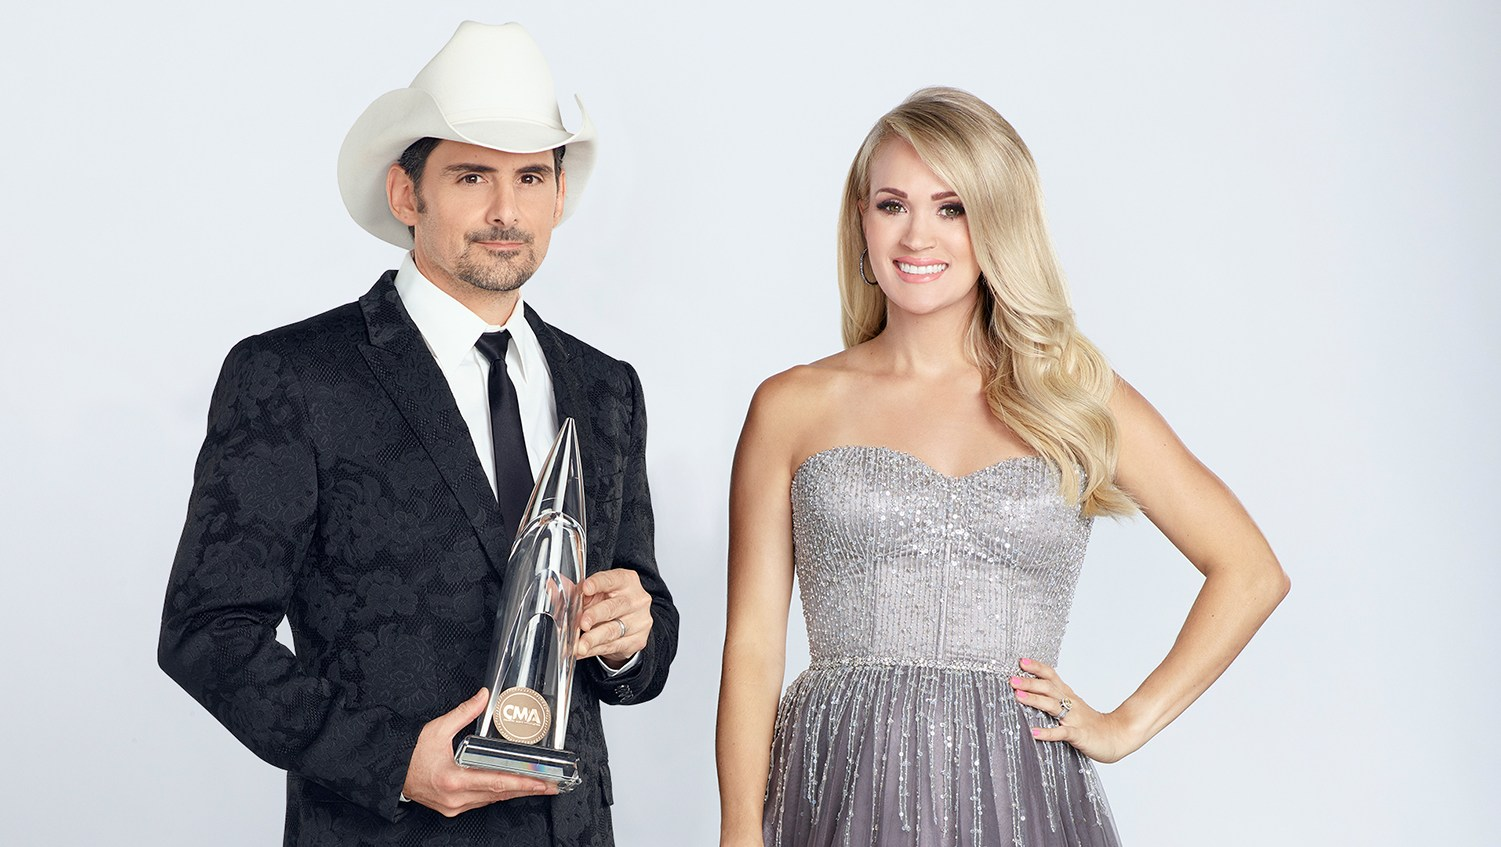 CMA Awards 2018: Everything You Need to Know About the Performers, How to Watch and More!